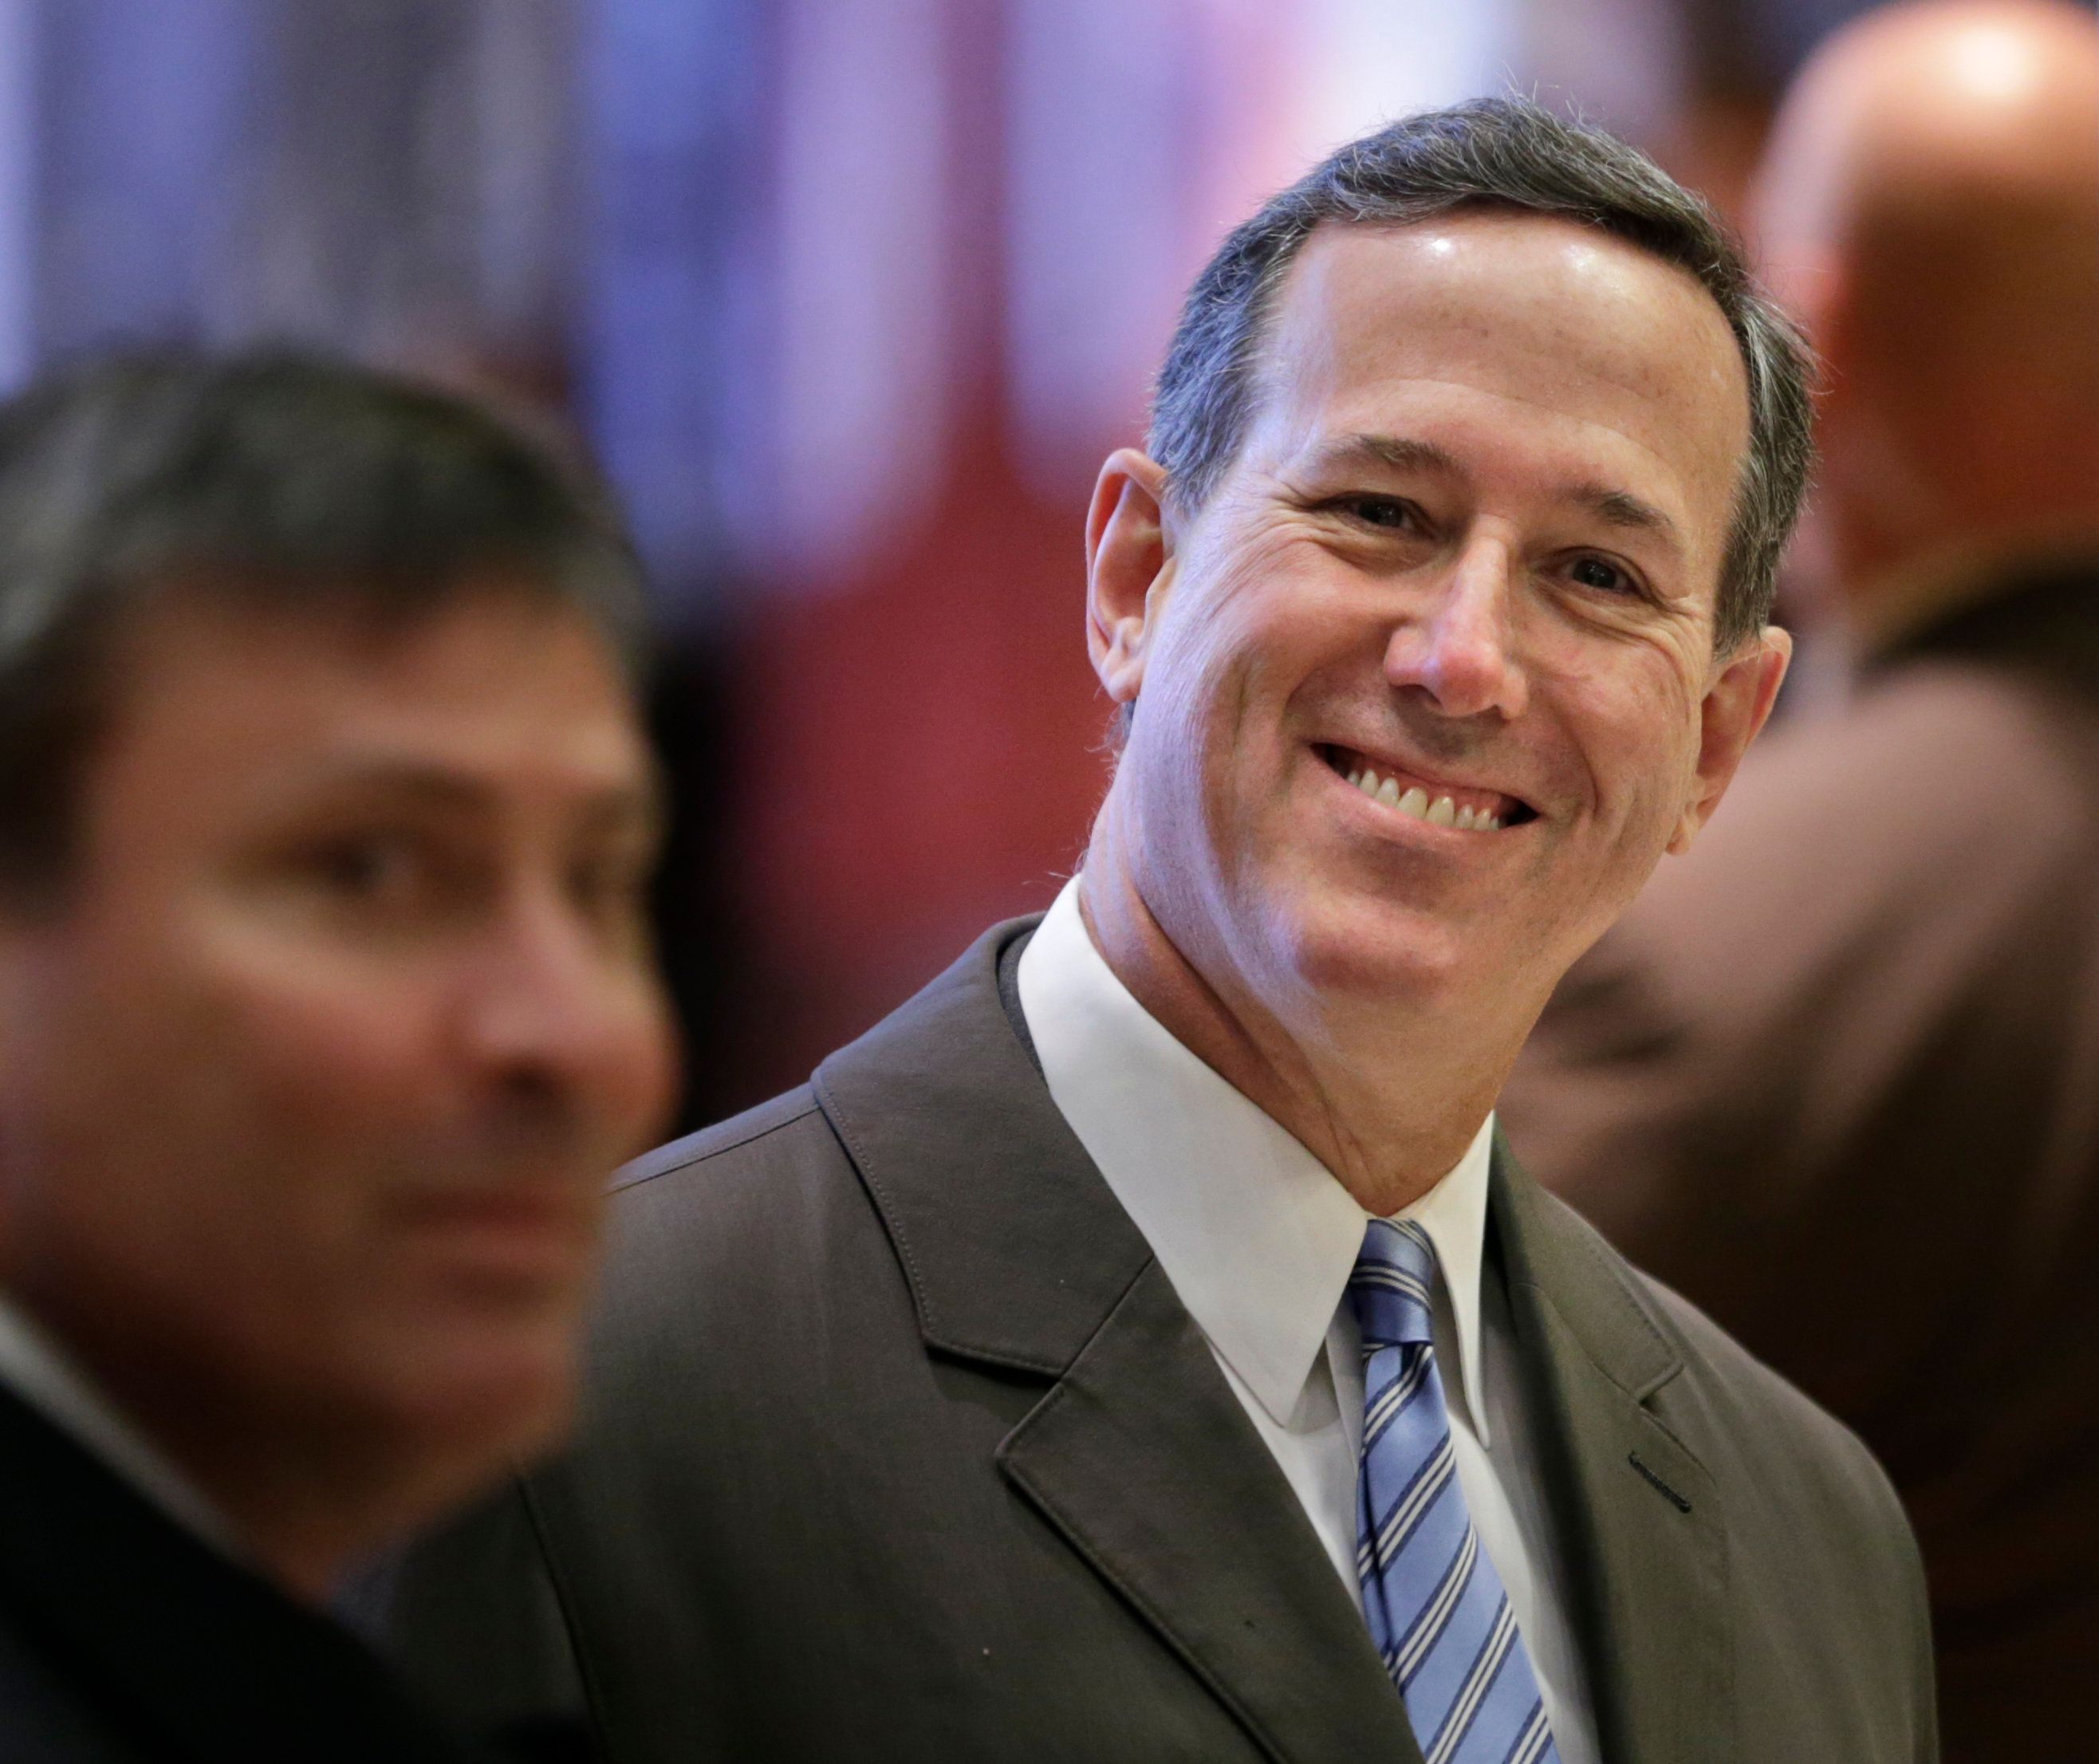 Former Pennsylvania Sen. Rick Santorum smiles at reporters while waiting for an elevator in Trump Tower in New York, Tuesday, Dec. 13, 2016. (AP Photo/Seth Wenig)